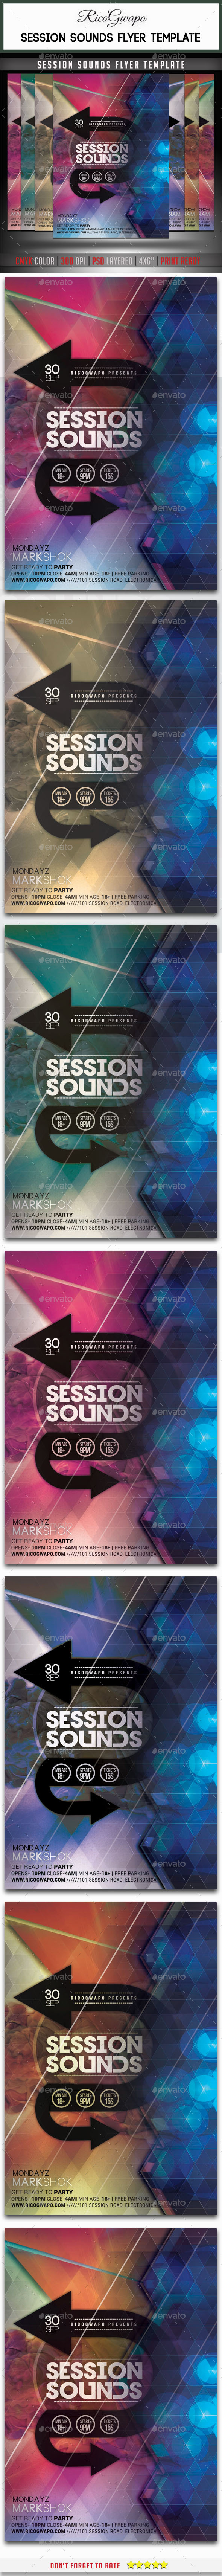 GraphicRiver Session Sounds Flyer Template 10653525